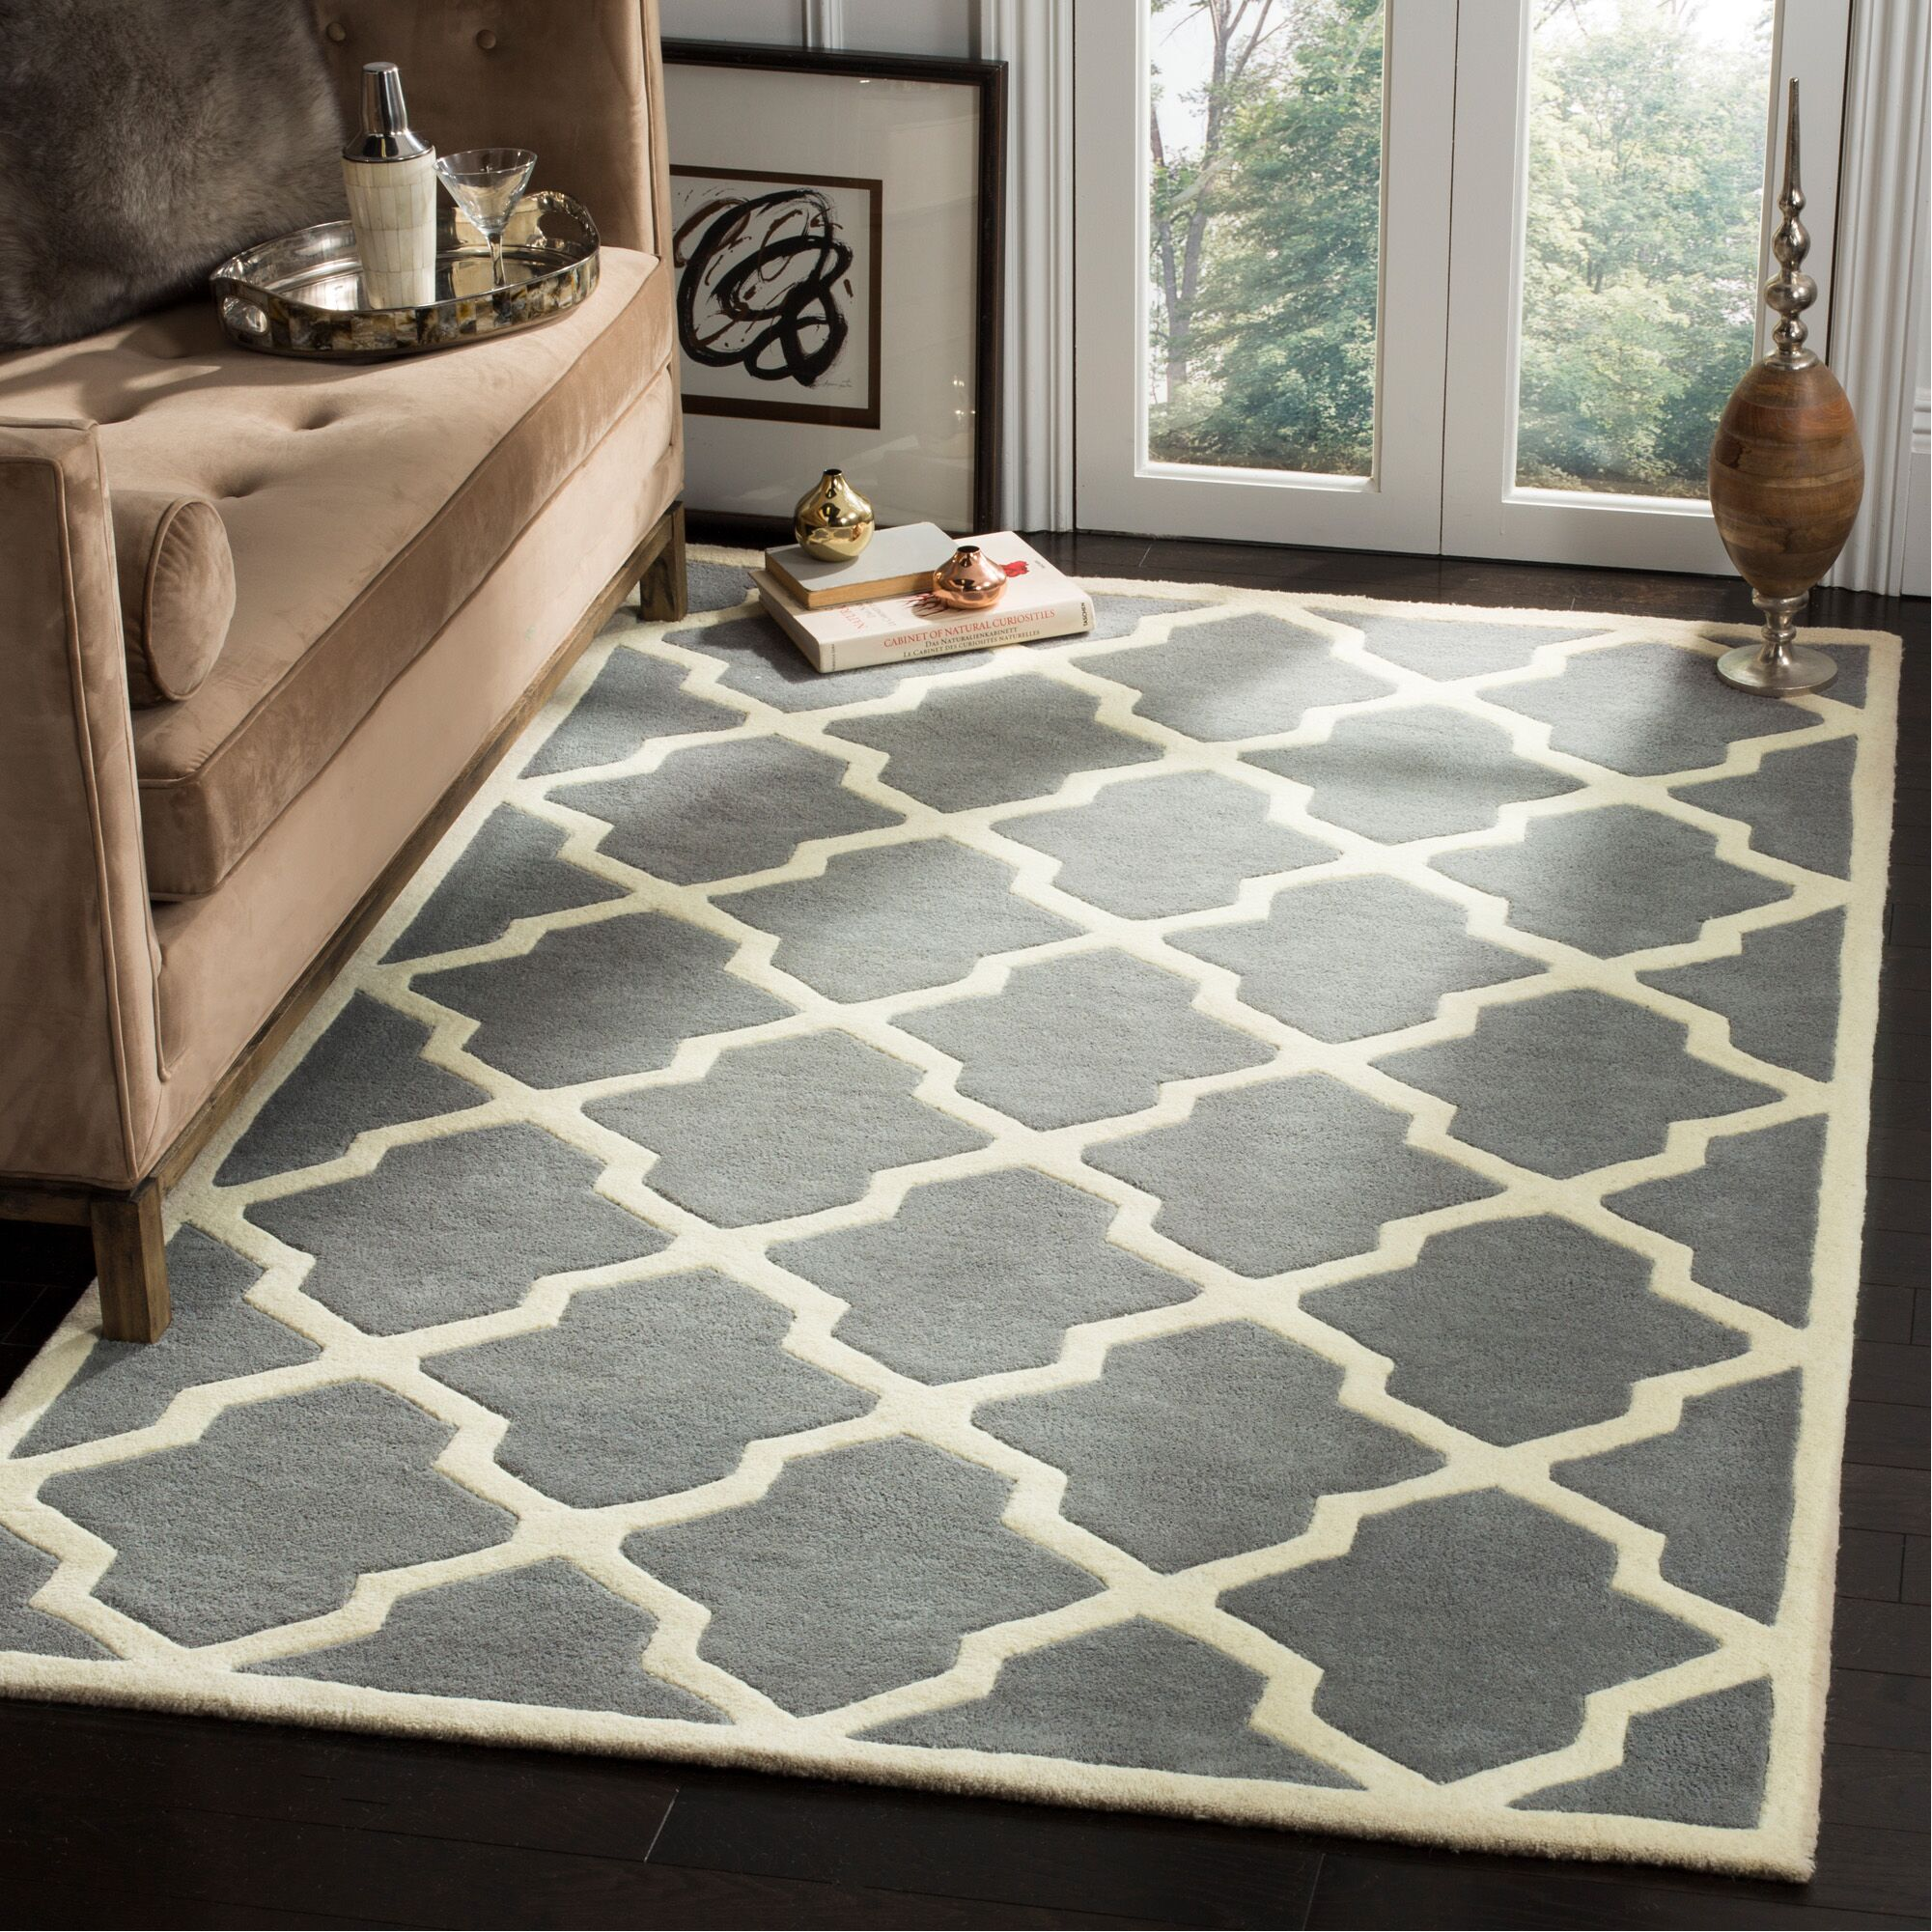 Wilkin Hand-Tufted Dark Gray/Ivory Area Rug Rug Size: Rectangle 5' x 8'